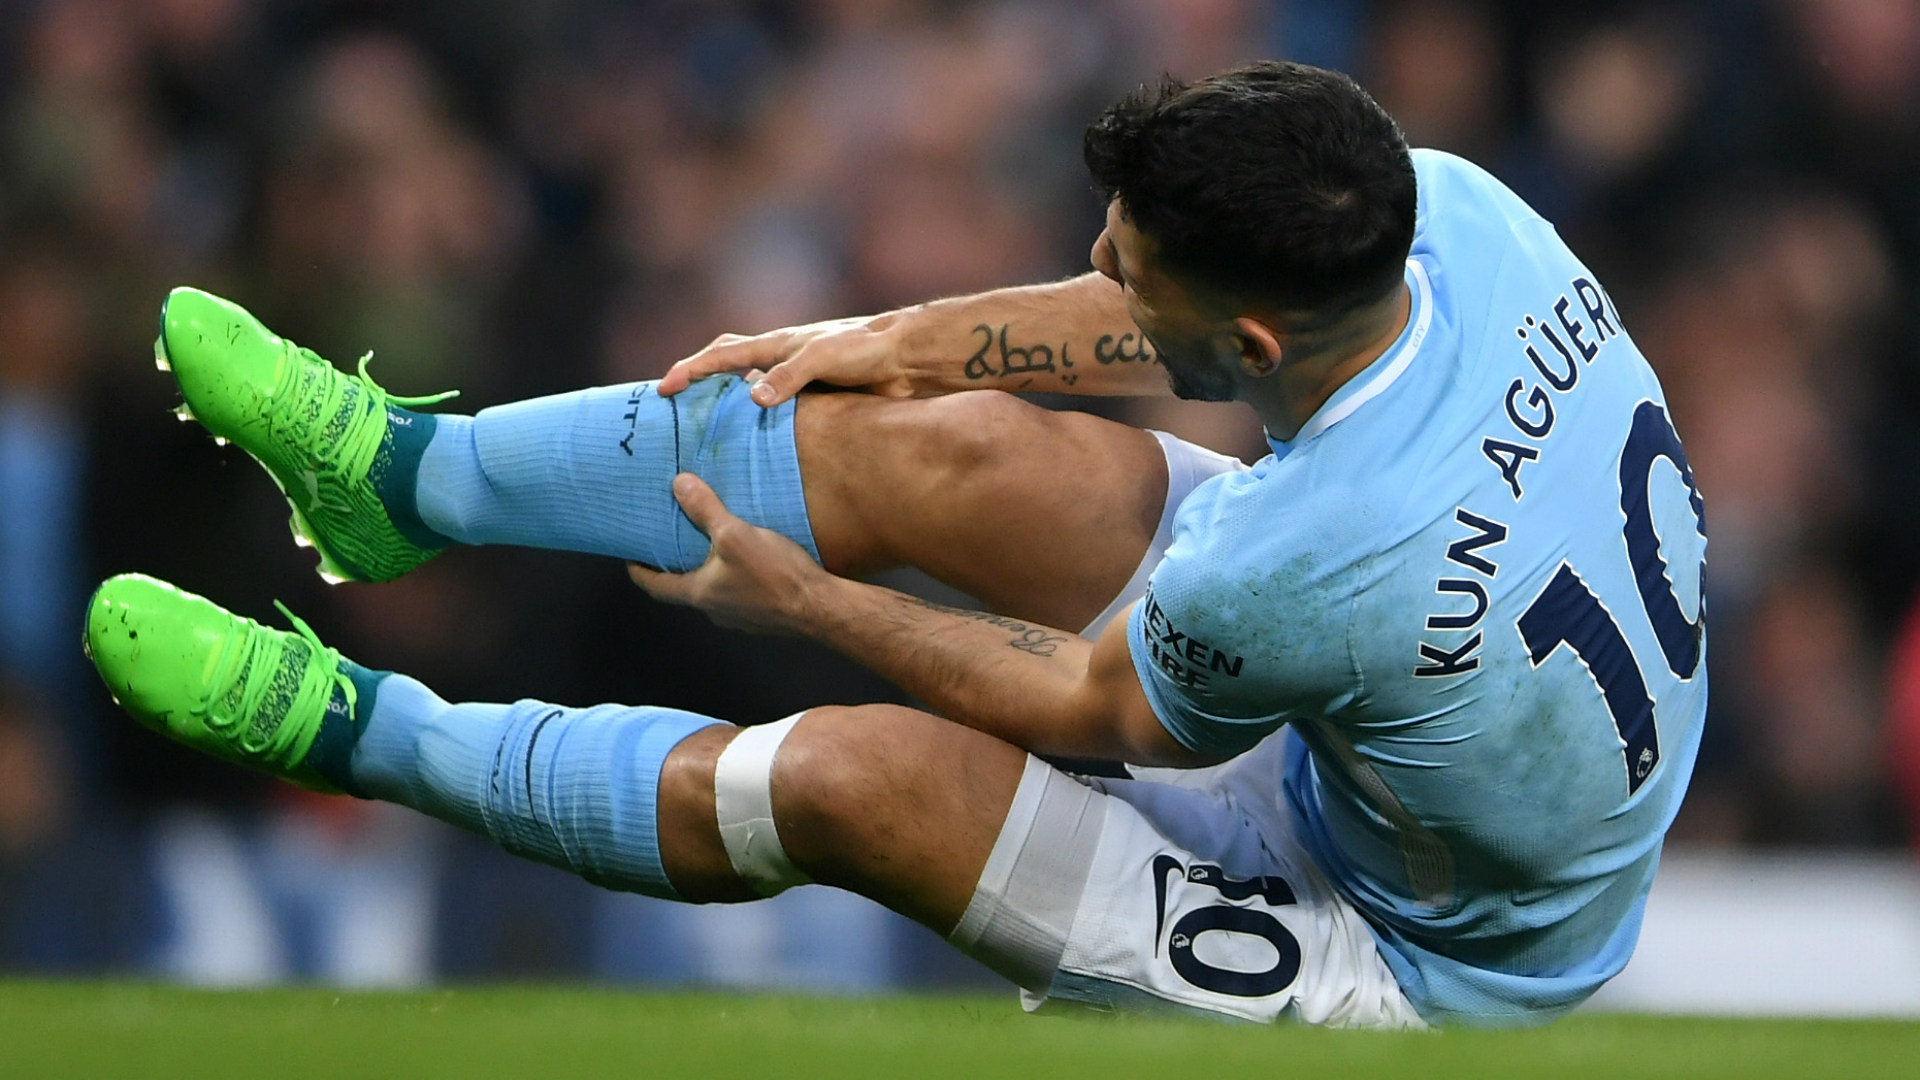 Man City striker Sergio Aguero confirms knee surgery